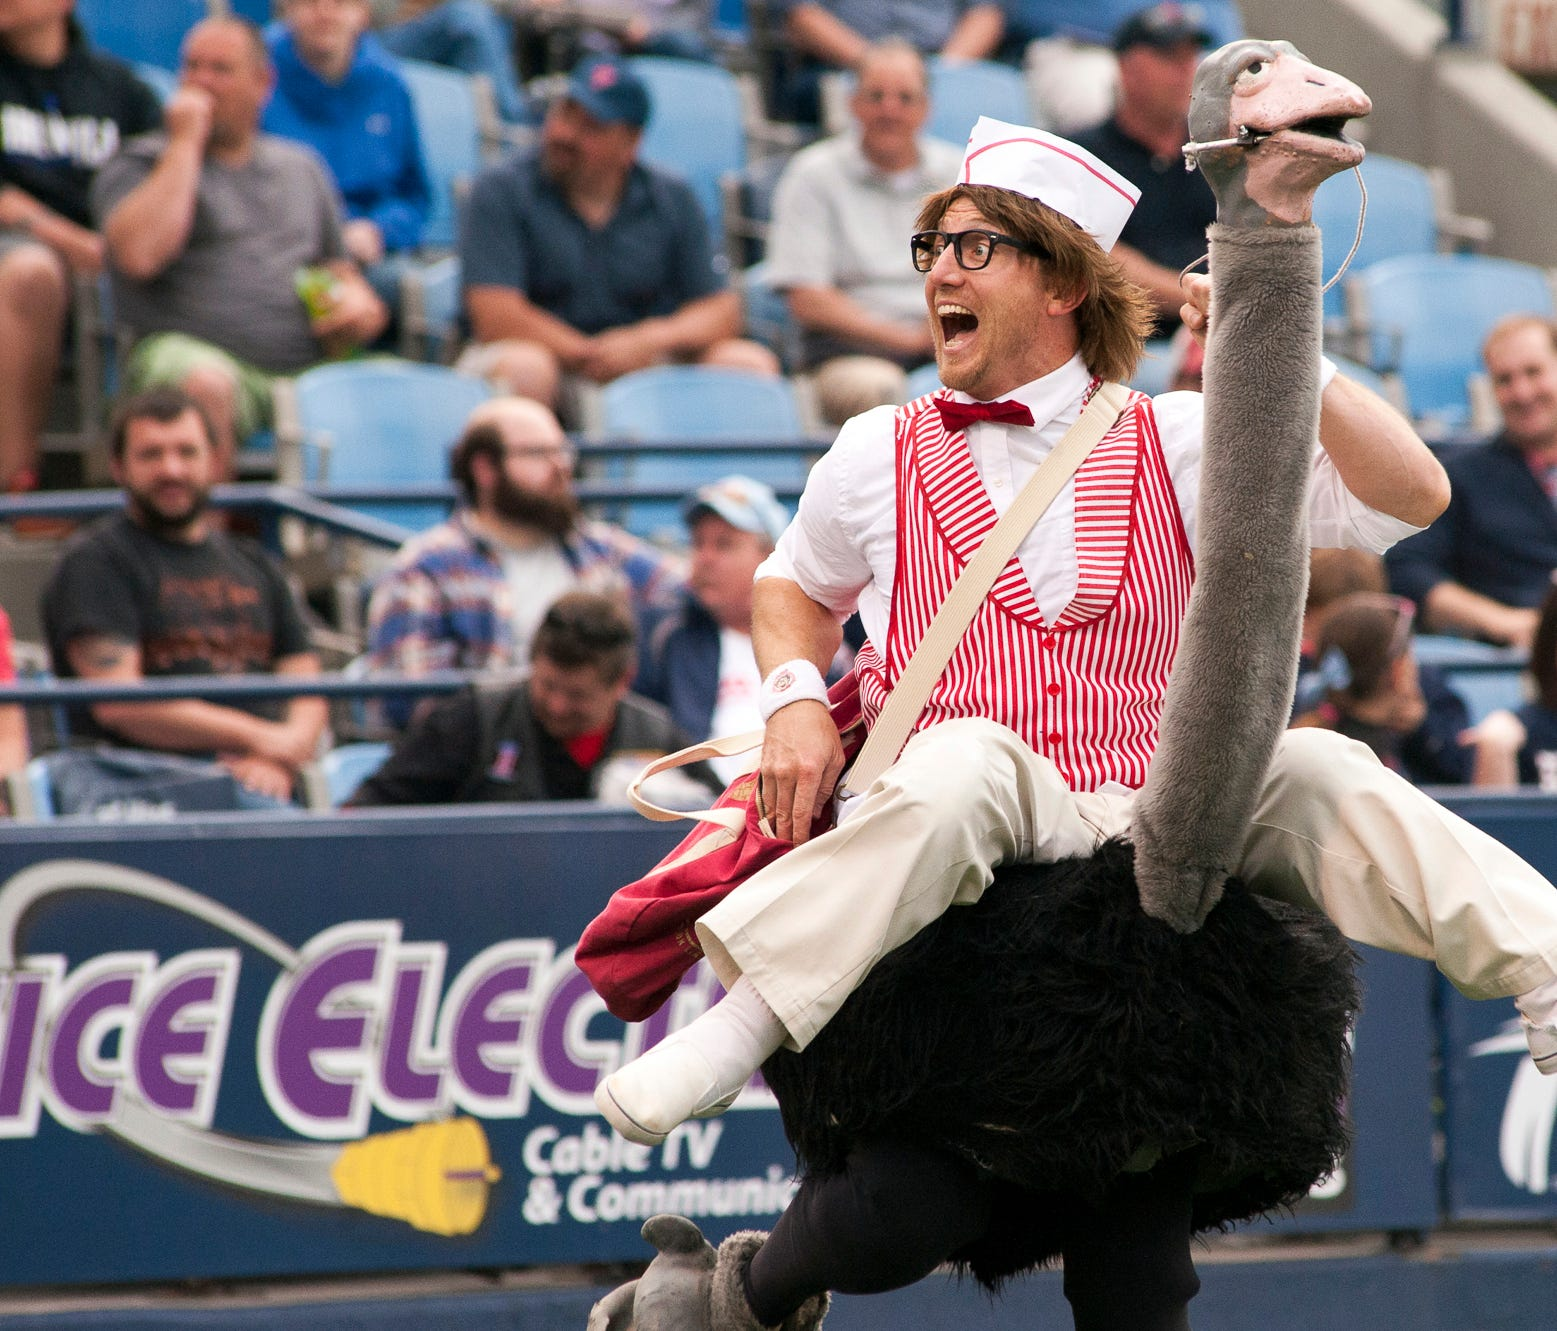 While the minor leagues are rich in zany mascots, there may be no weirder then the Fightin Phils' ostrich-riding vendor, who tosses hot dogs into the stands in Reading, Pa.